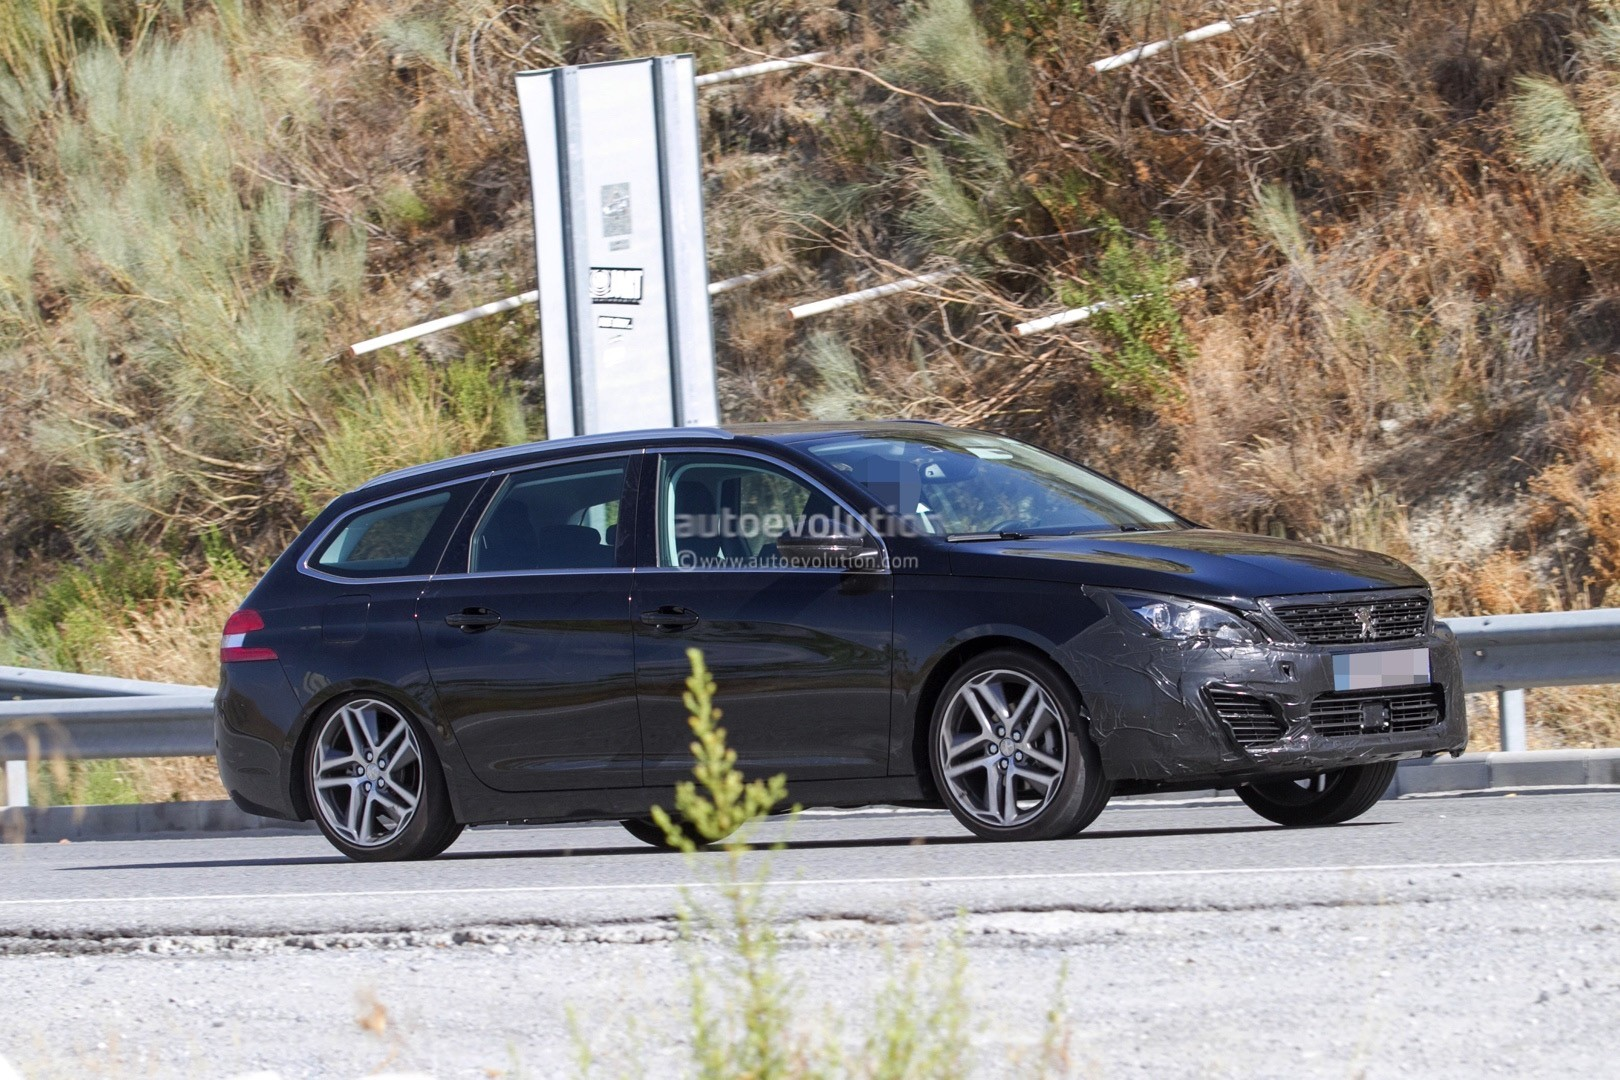 2017 - [Peugeot] 308 II Restylée - Page 11 Peugeot-prepares-to-facelift-308-model-lineup-for-2017_7